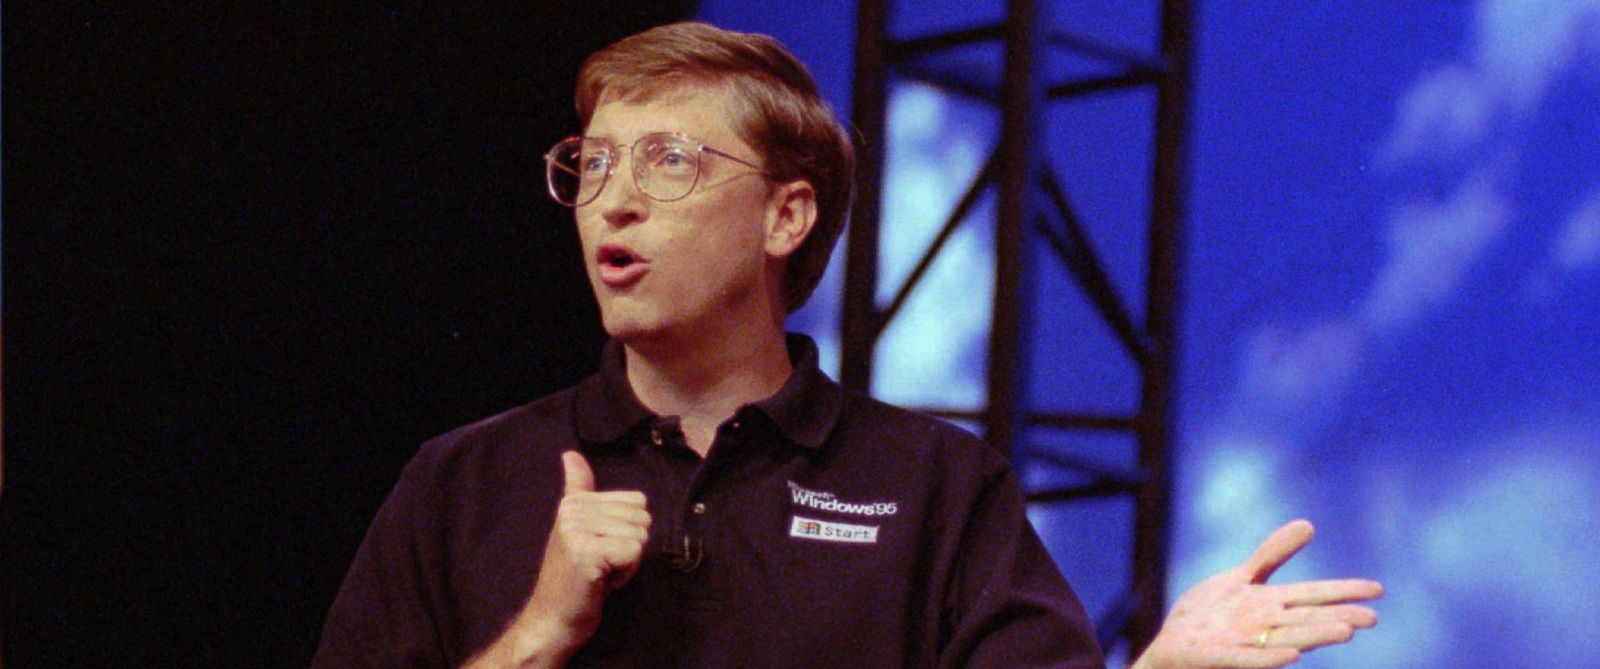 PHOTO:Microsoft Chairman Bill Gates speaks in a tent at the Microsoft Windows 95 Launch Event, Aug. 24, 1995, in Redmond, Wash., on the companys corporate campus.